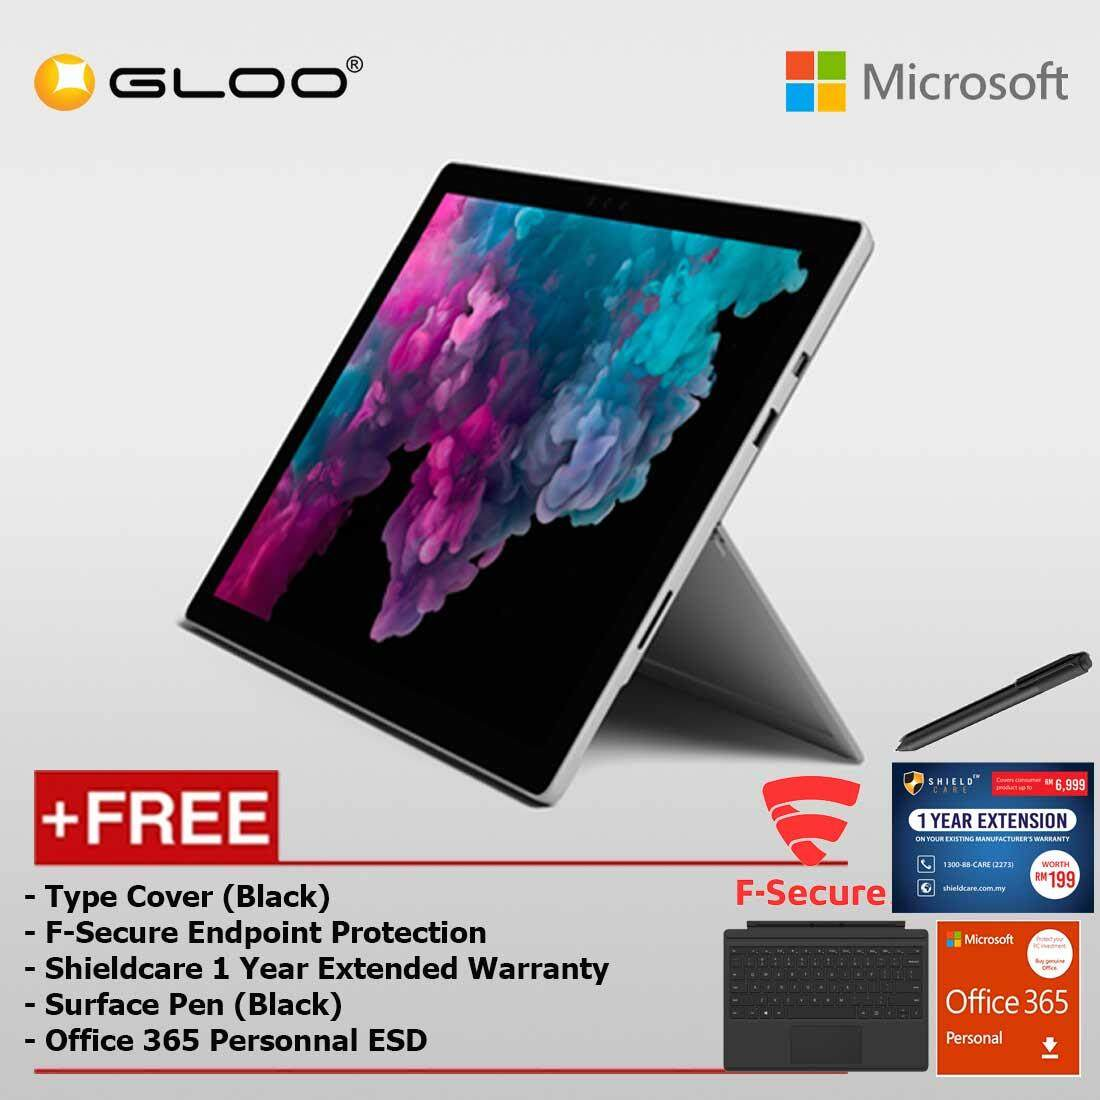 Microsoft Surface Pro 6 Core i5/8GB RAM - 256GB + Type Cover Black + Shield Care 1 Year Extended Warranty + F-Secure End Point Protection + Pen Black + Office 365 Personal (ESD)